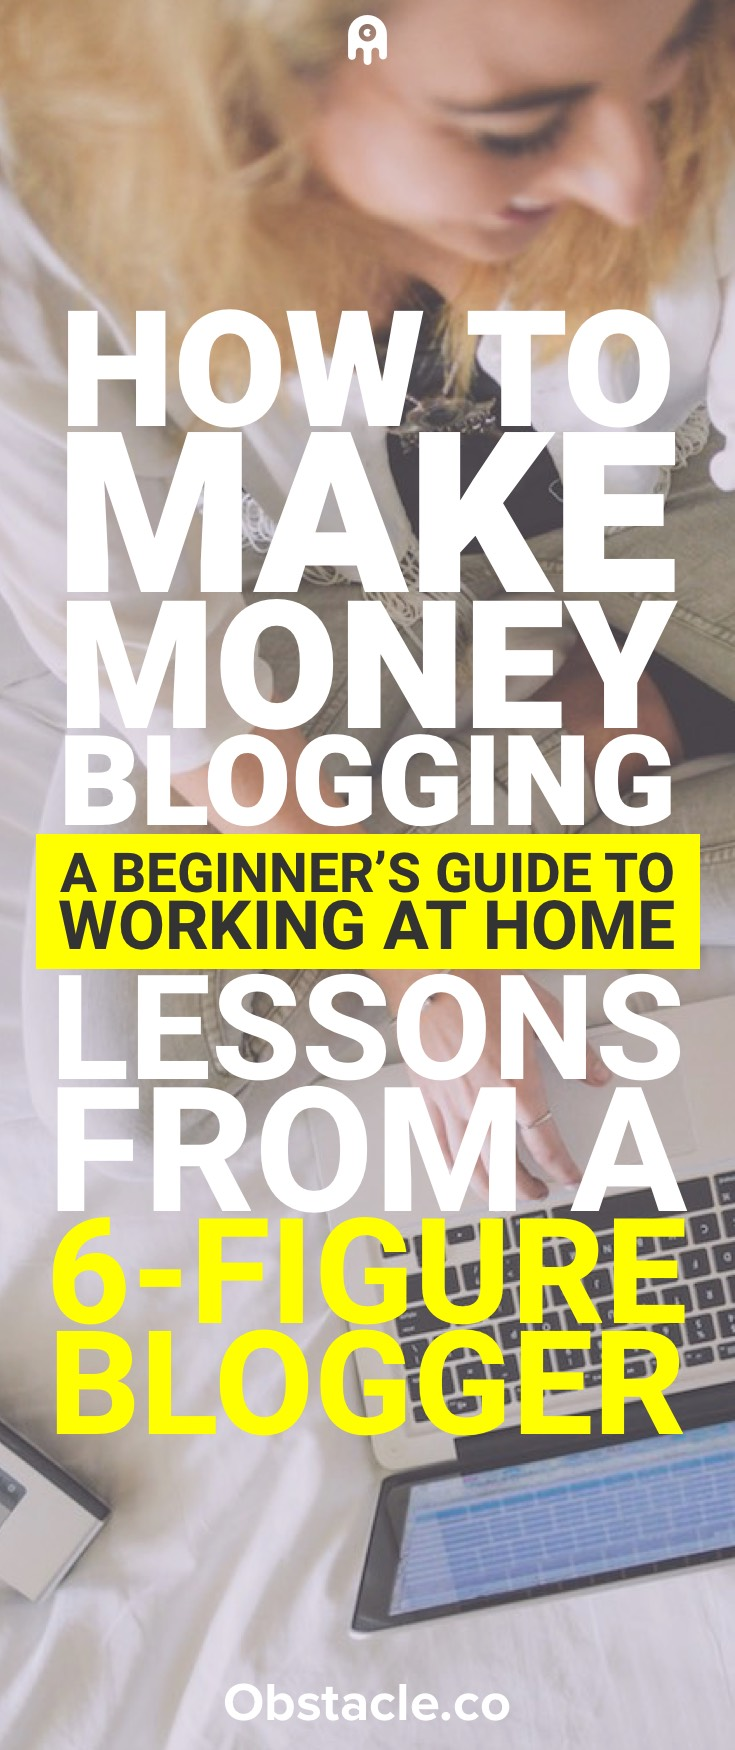 How to Make Money Blogging: A Beginner's Guide to Working at Home